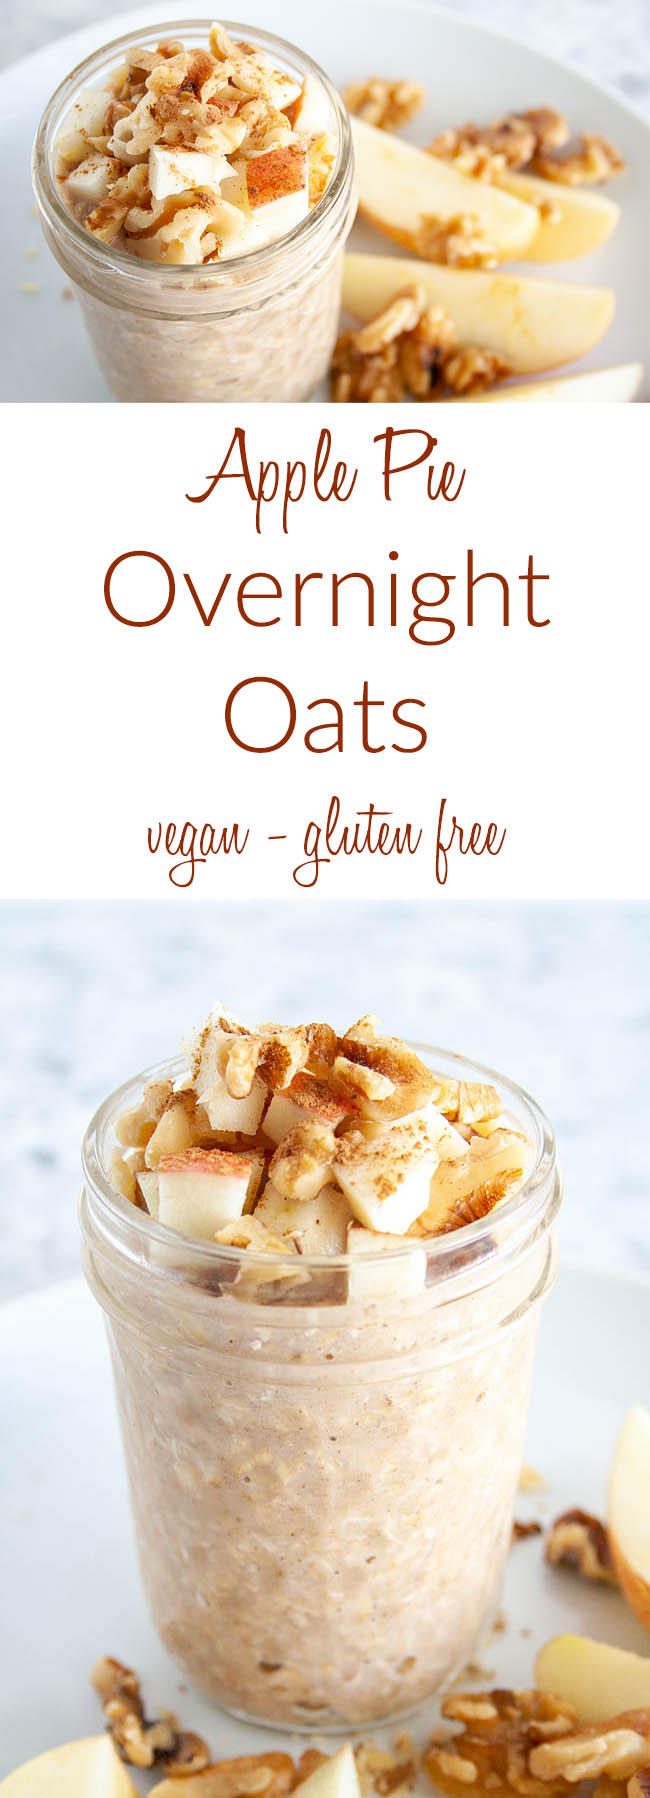 Overnight Oats collage photo with text.